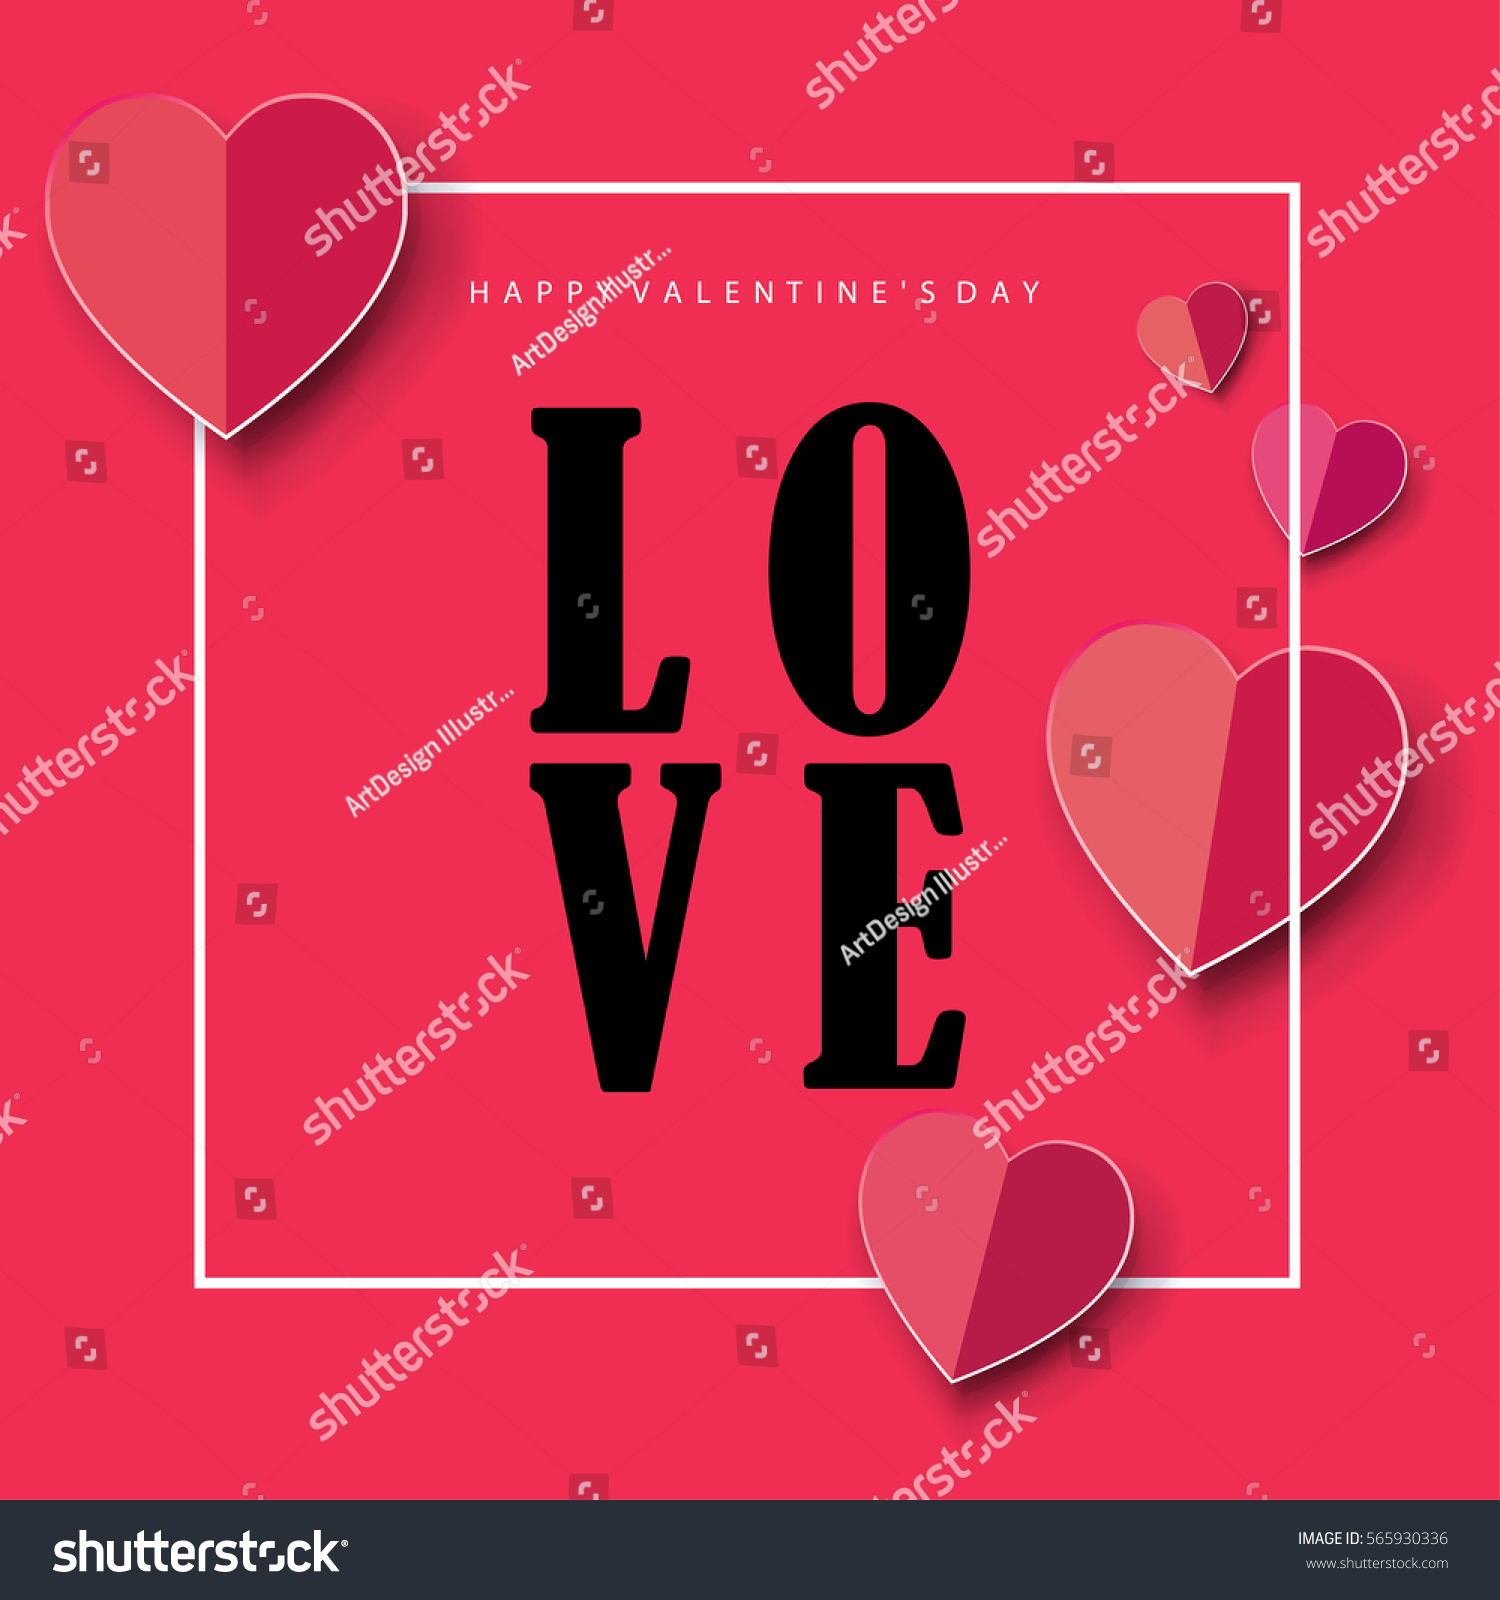 Happy Valentines Day Greeting Card Vector Vector 565930336 – Happy Valentines E Card